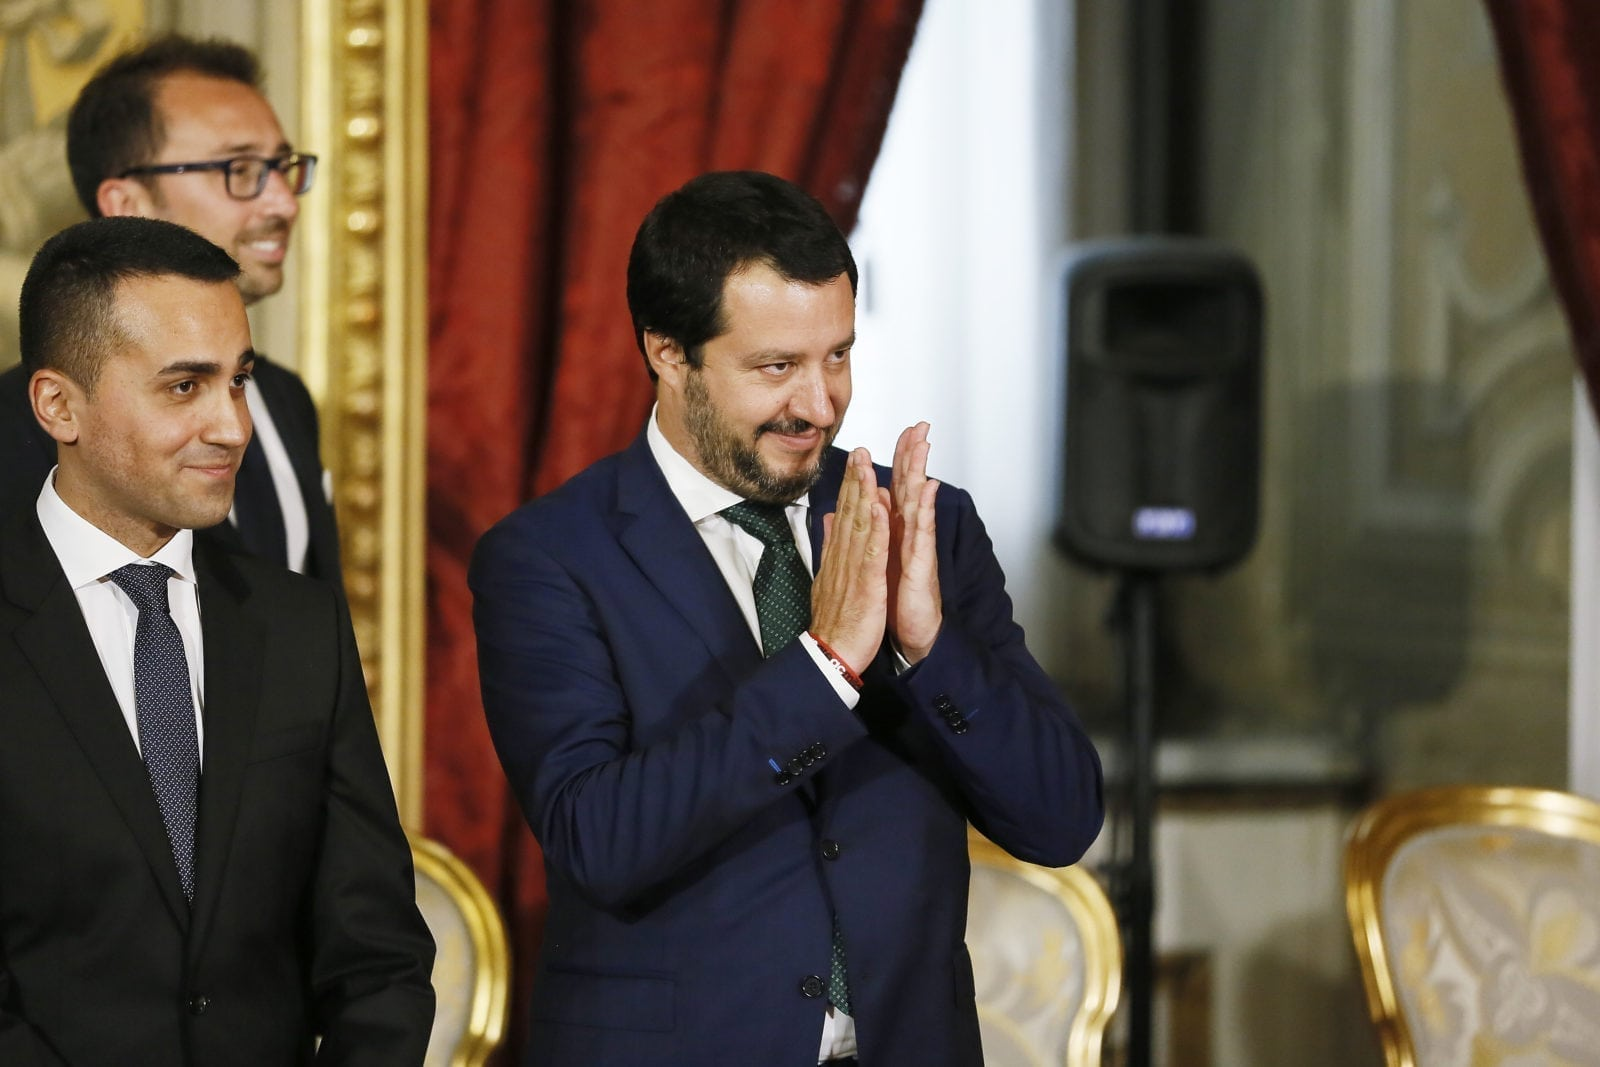 ROME, ITALY - JUNE 01: Interior Minister and Deputy PM Matteo Salvini attends the swearing in ceremony of the new government led by Prime Minister Giuseppe Conte at Palazzo del Quirinale on June 1, 2018 in Rome, Italy. Law professor Giuseppe Conte has been chosen as Italy's new prime minister by the leader of the 5-Star Movement, Luigi Di Maio, and League leader Matteo Salvini. (Photo by Ernesto S. Ruscio/Getty Images)